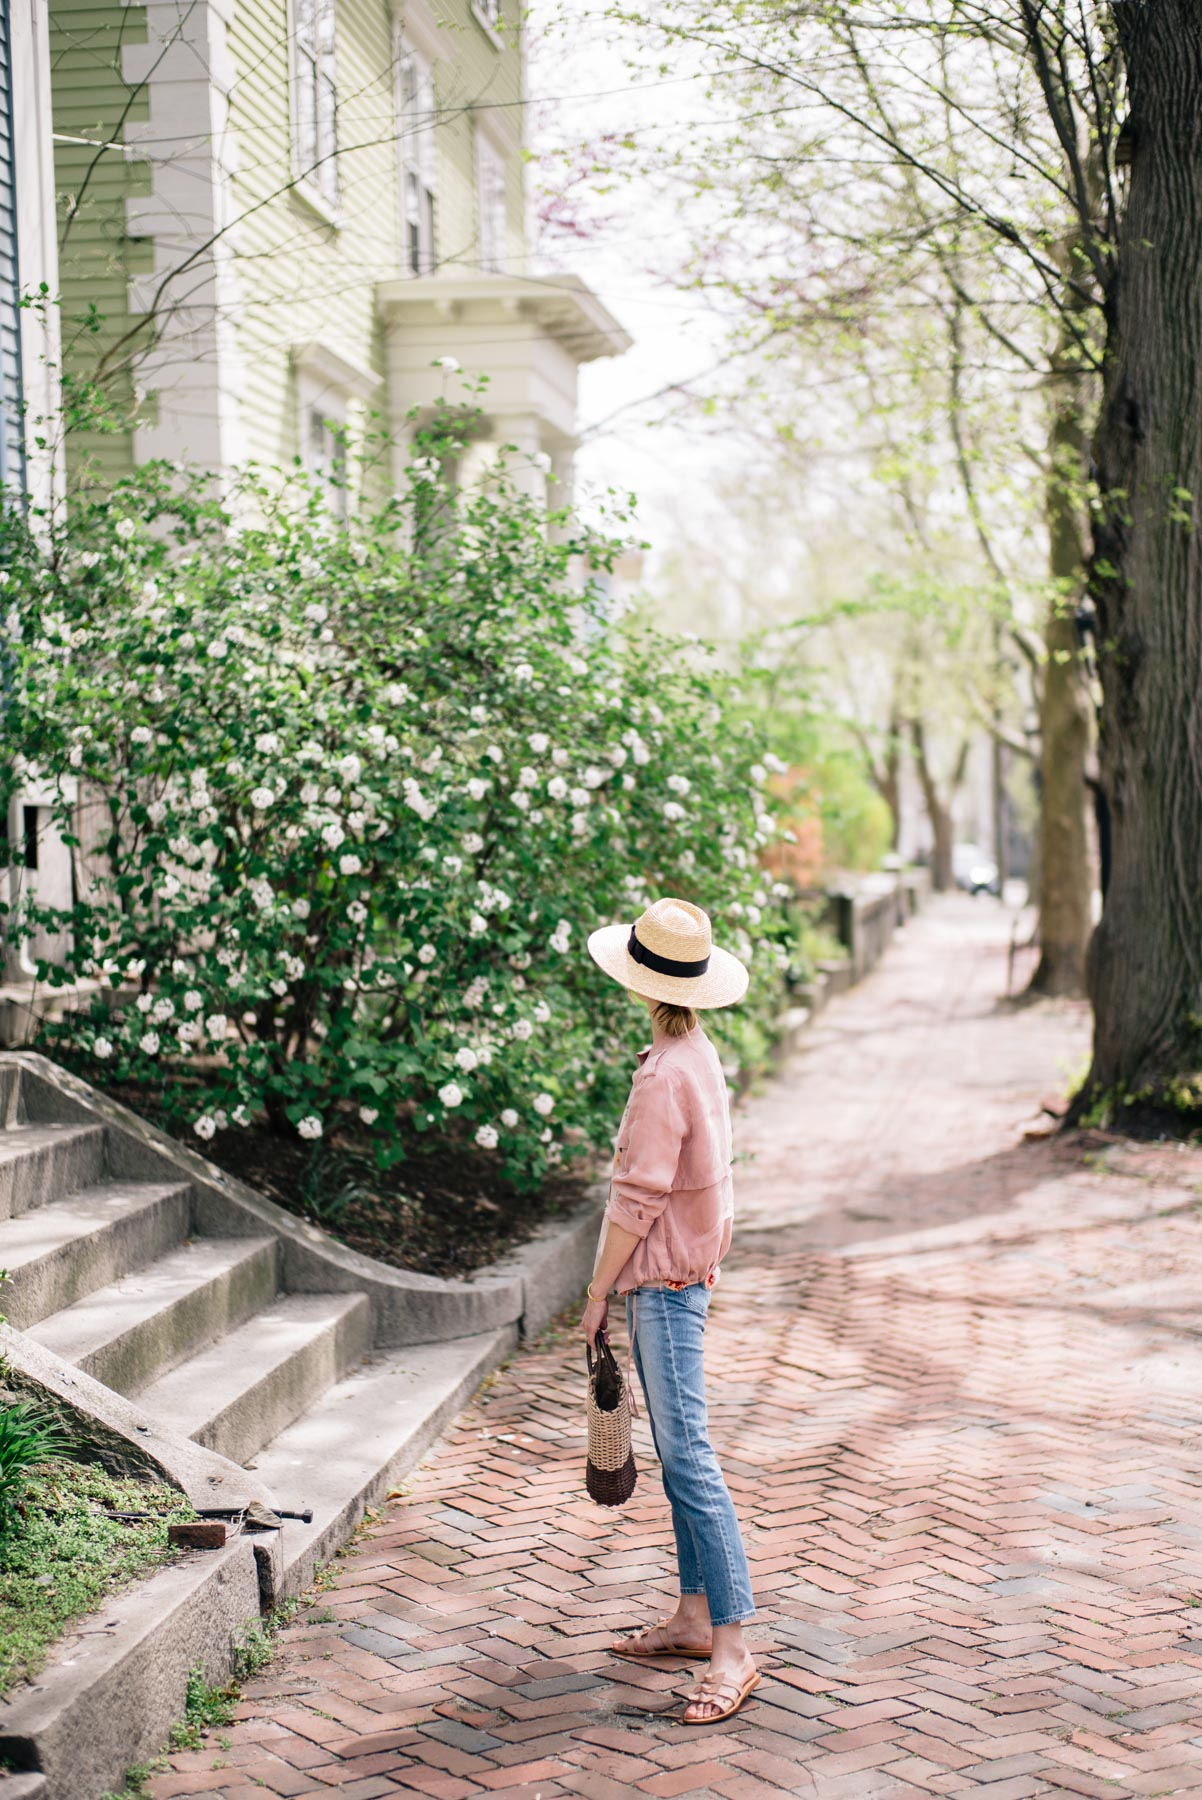 Jess Ann Kirby explores Providence in AG Pheobe Jeans and Kaanas bow sandals